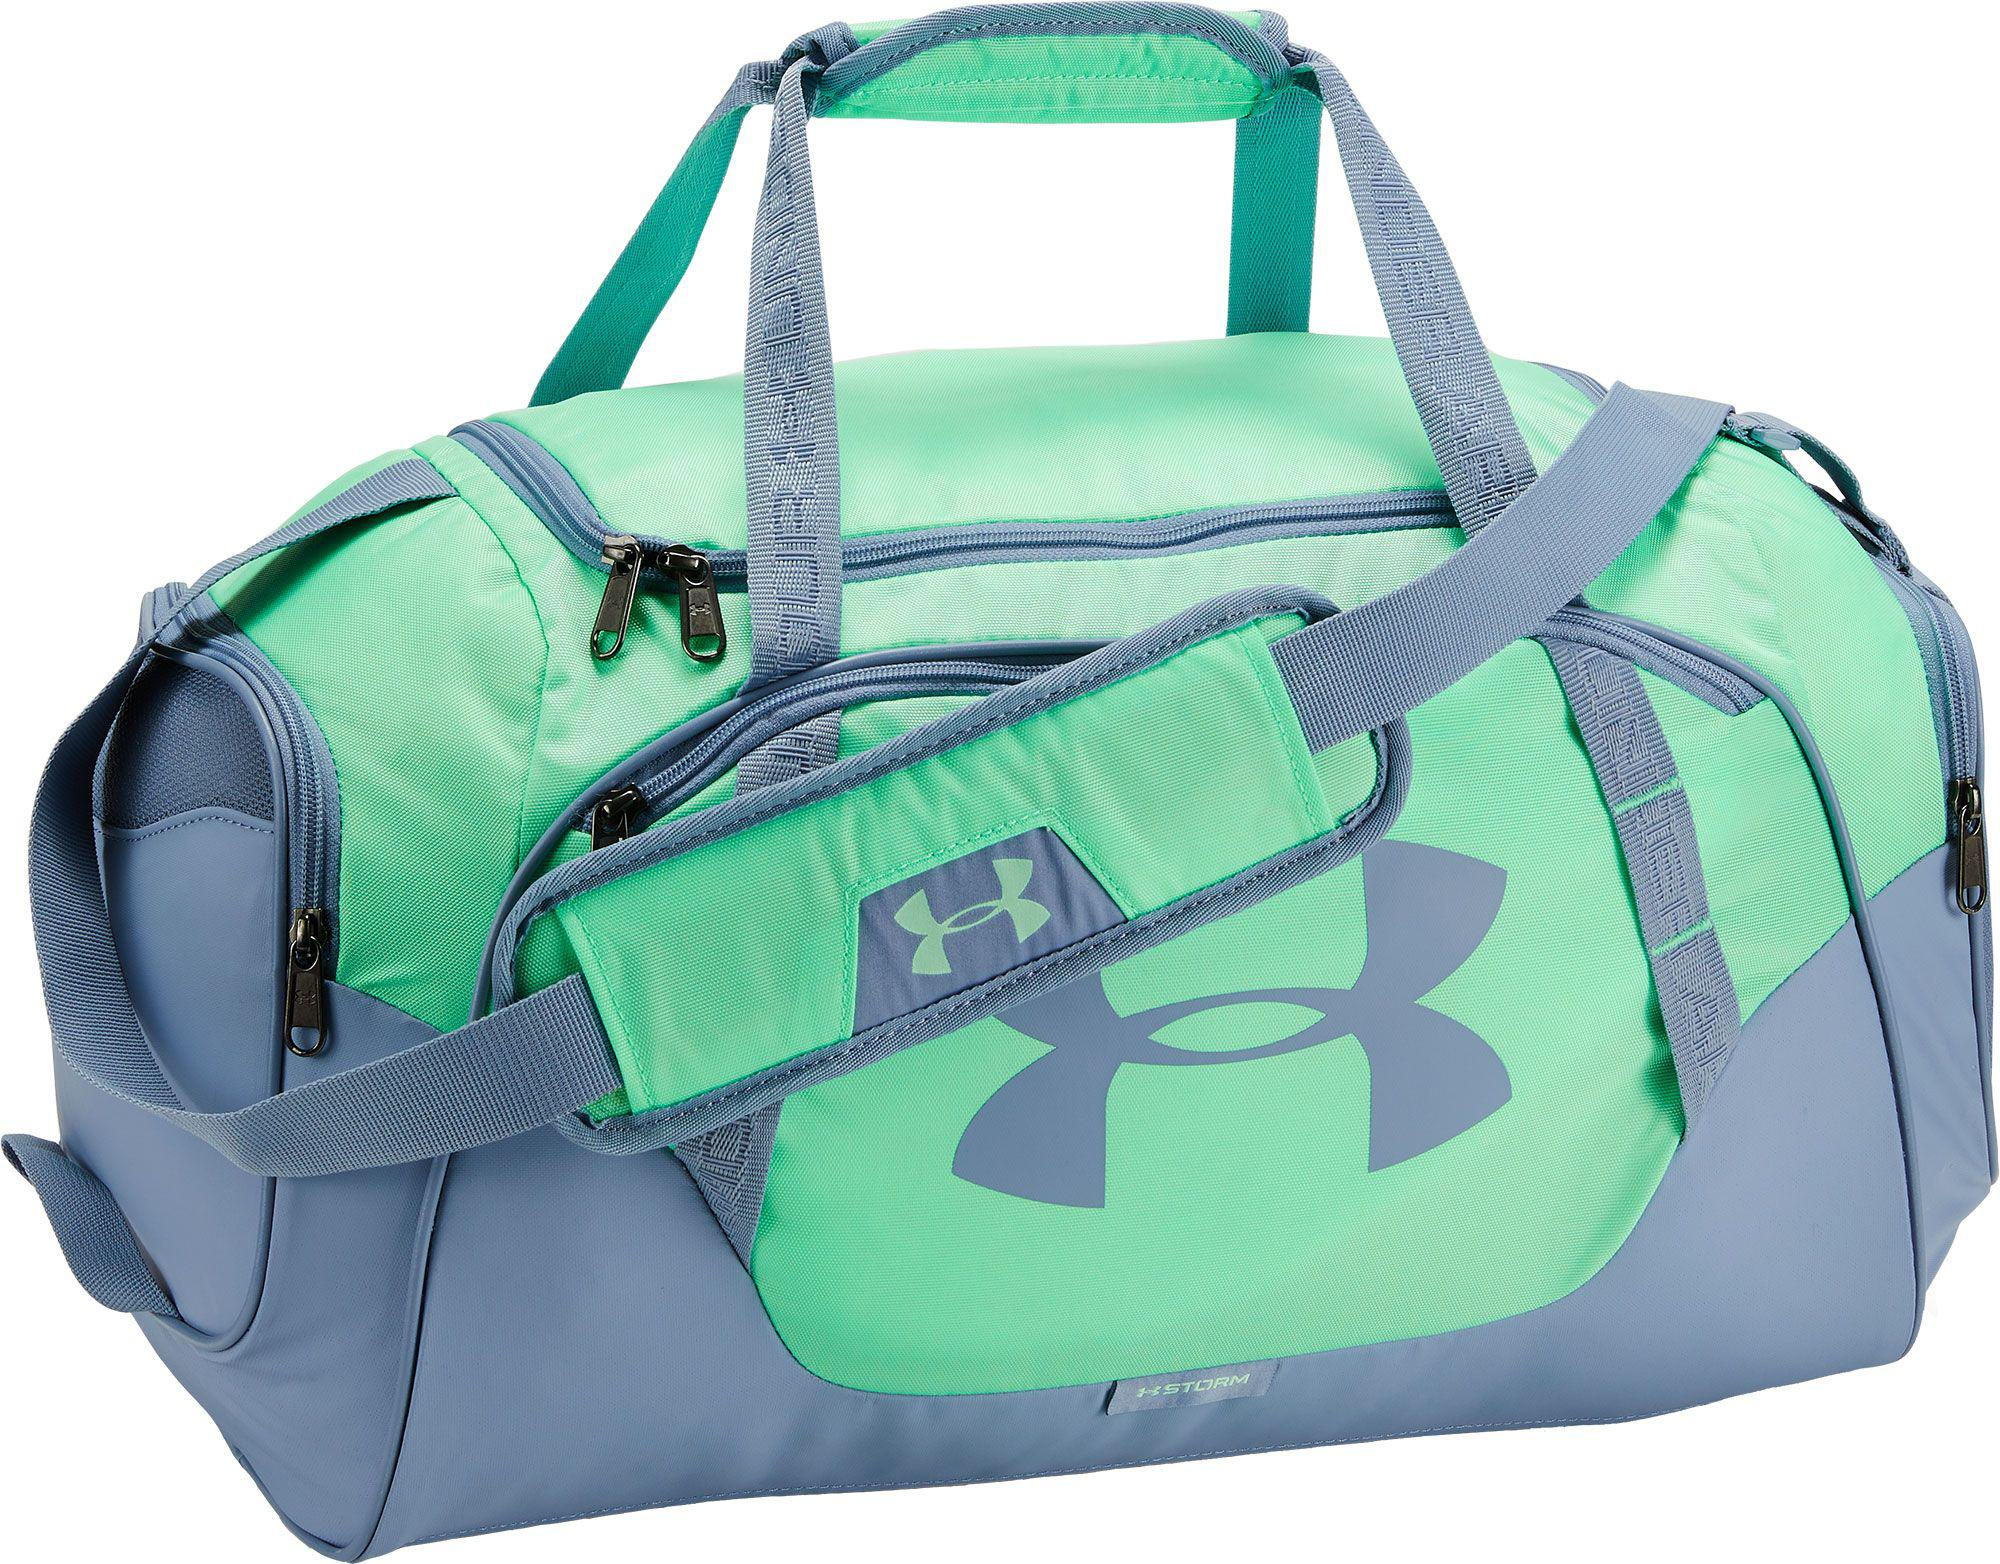 b312d9b23d Lyst - Under Armour Undeniable 3.0 Small Duffle Bag in Green for Men